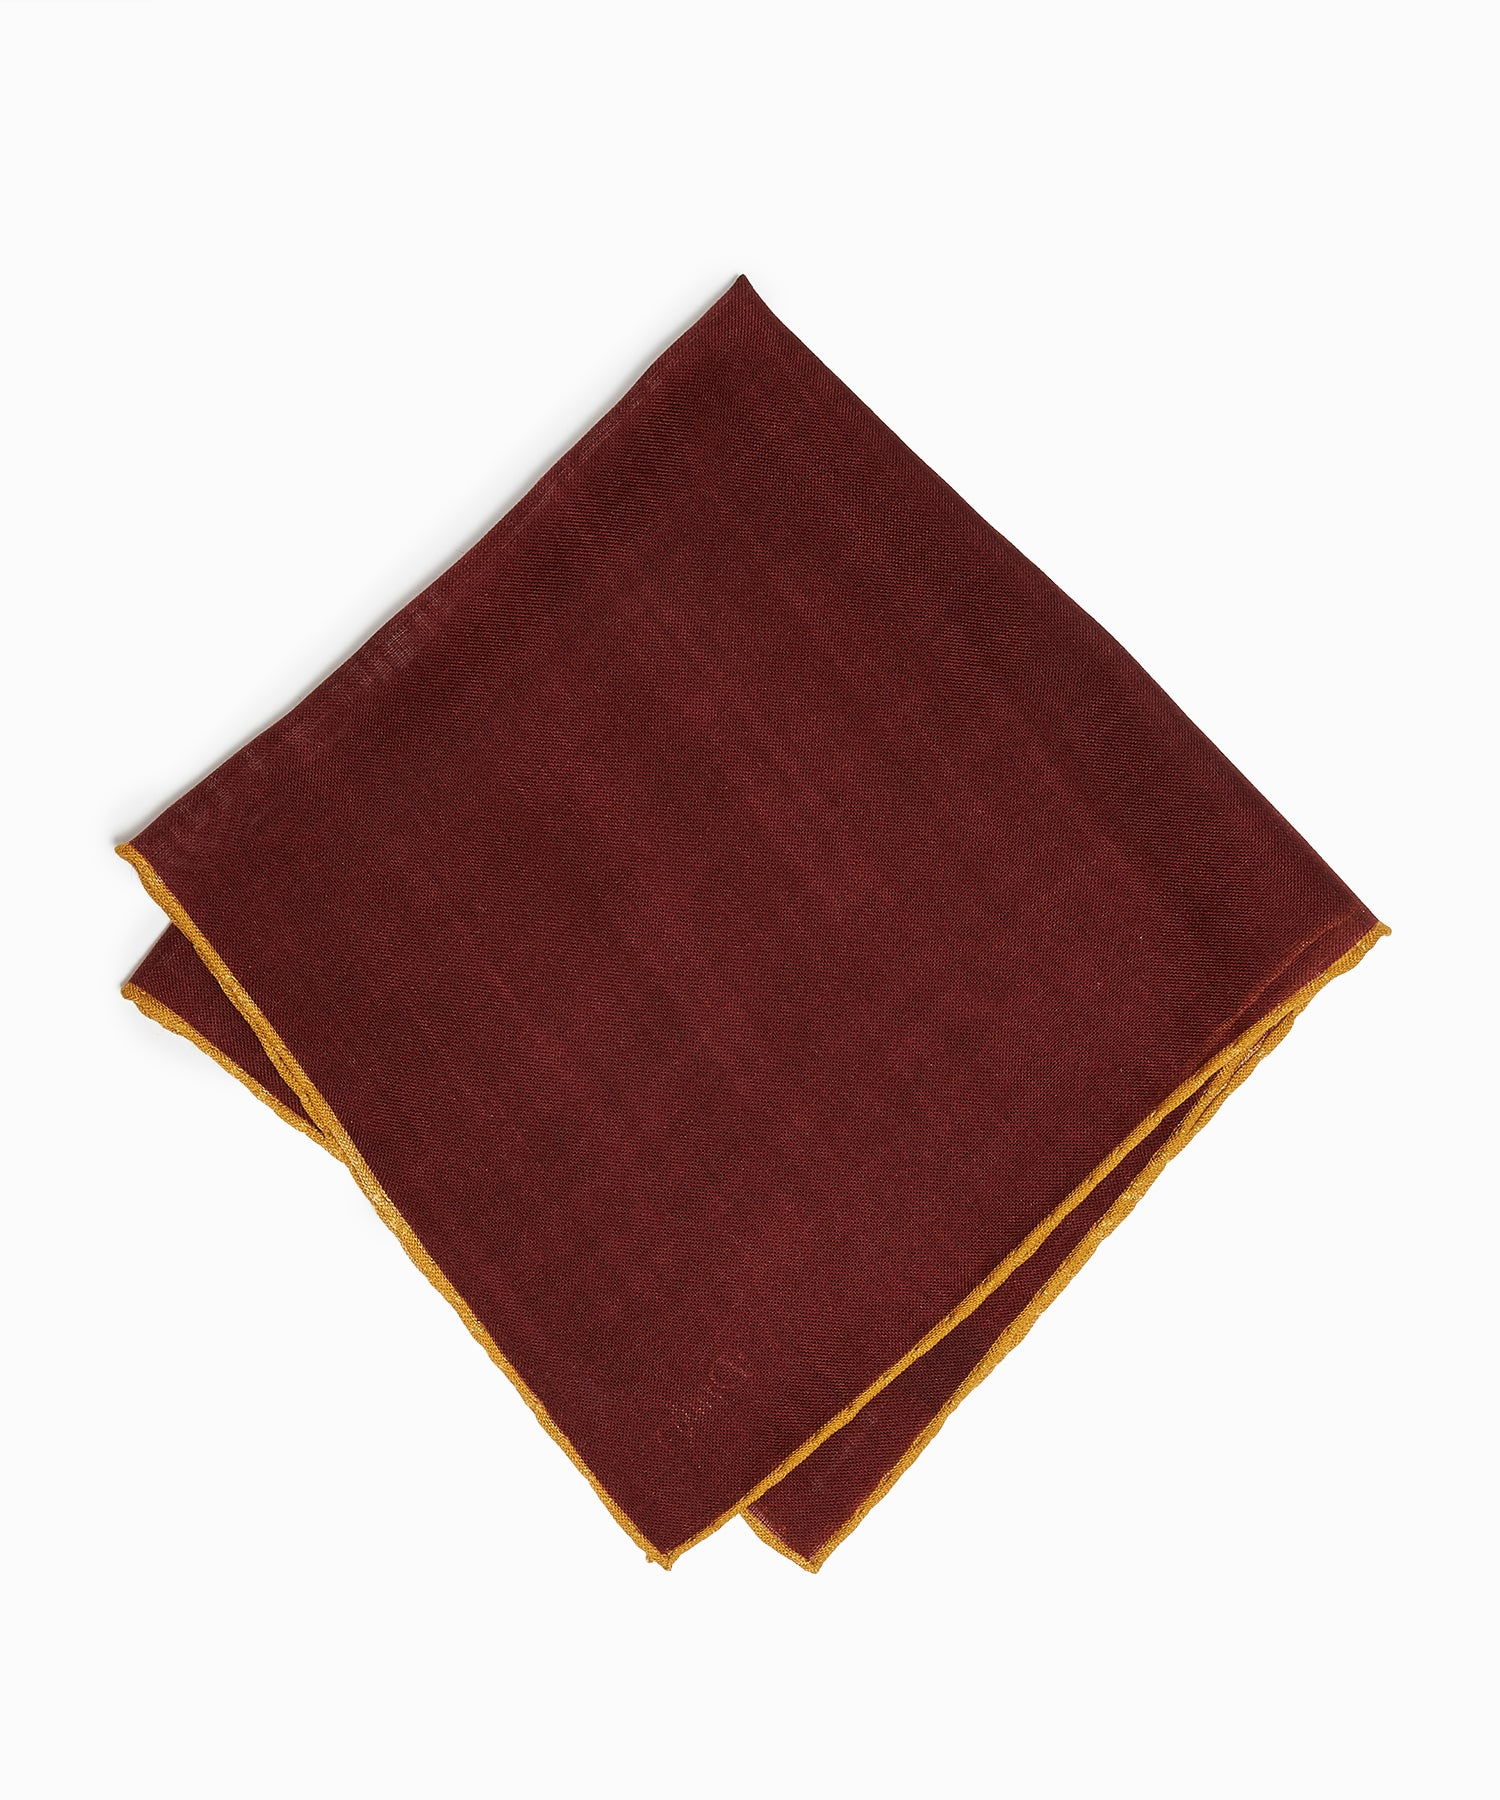 Drake's Tipped Pocket Square in Burgundy